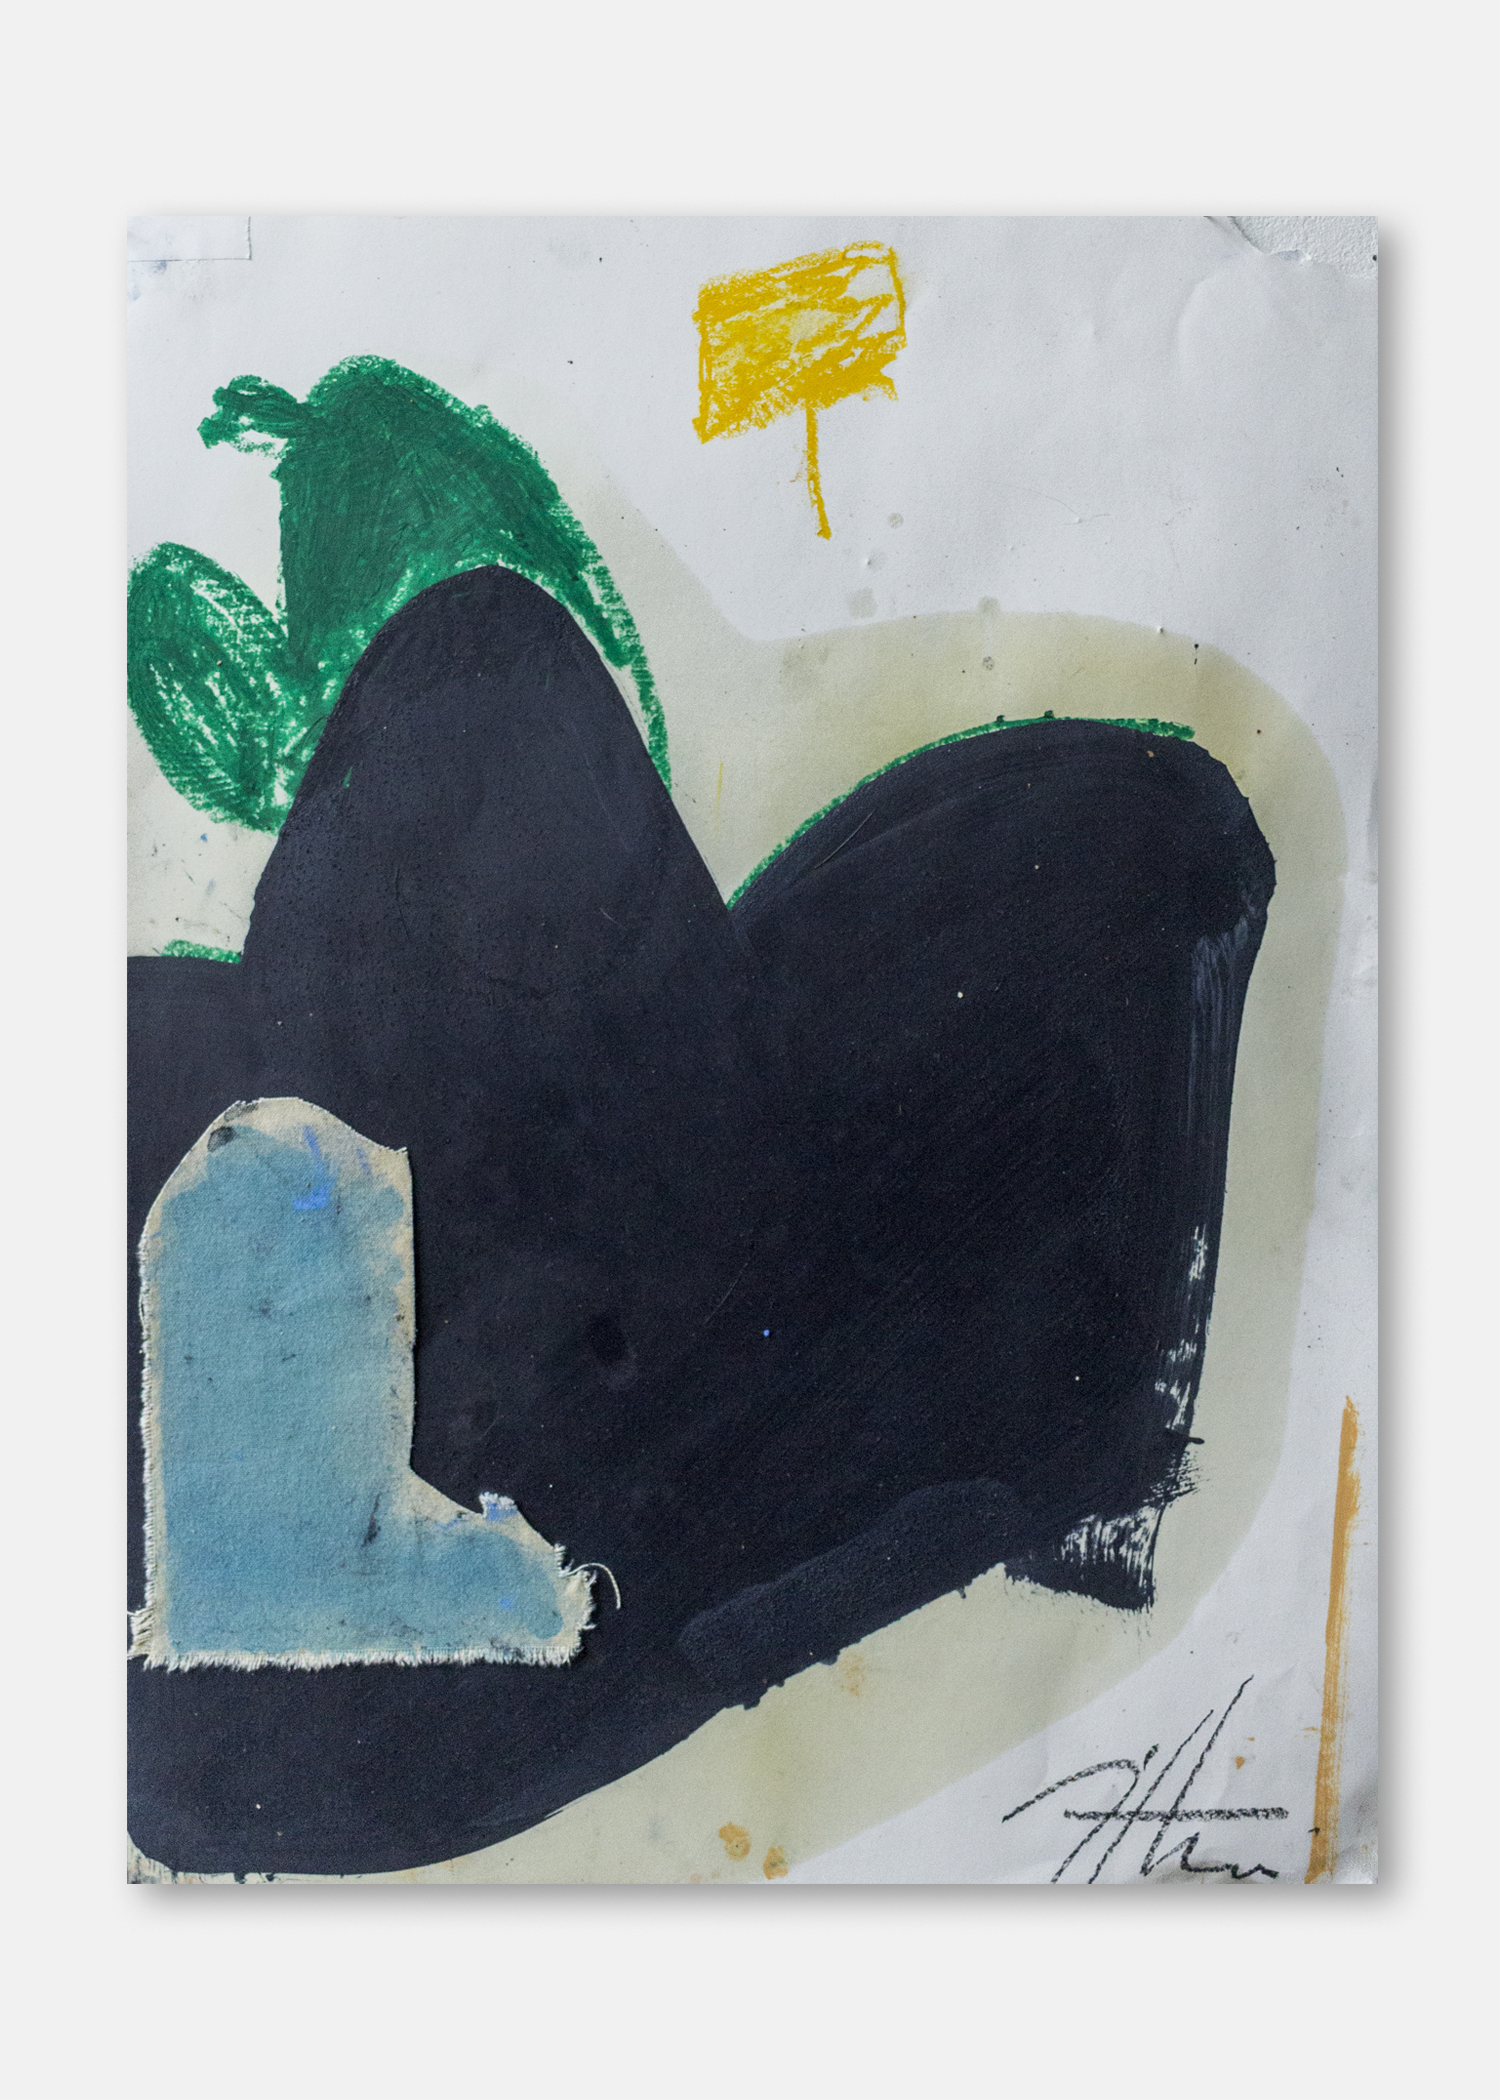 Untitled  Oil, pigment and collaged fabric on paper  45.5 x 61 cm  24 x 18 in